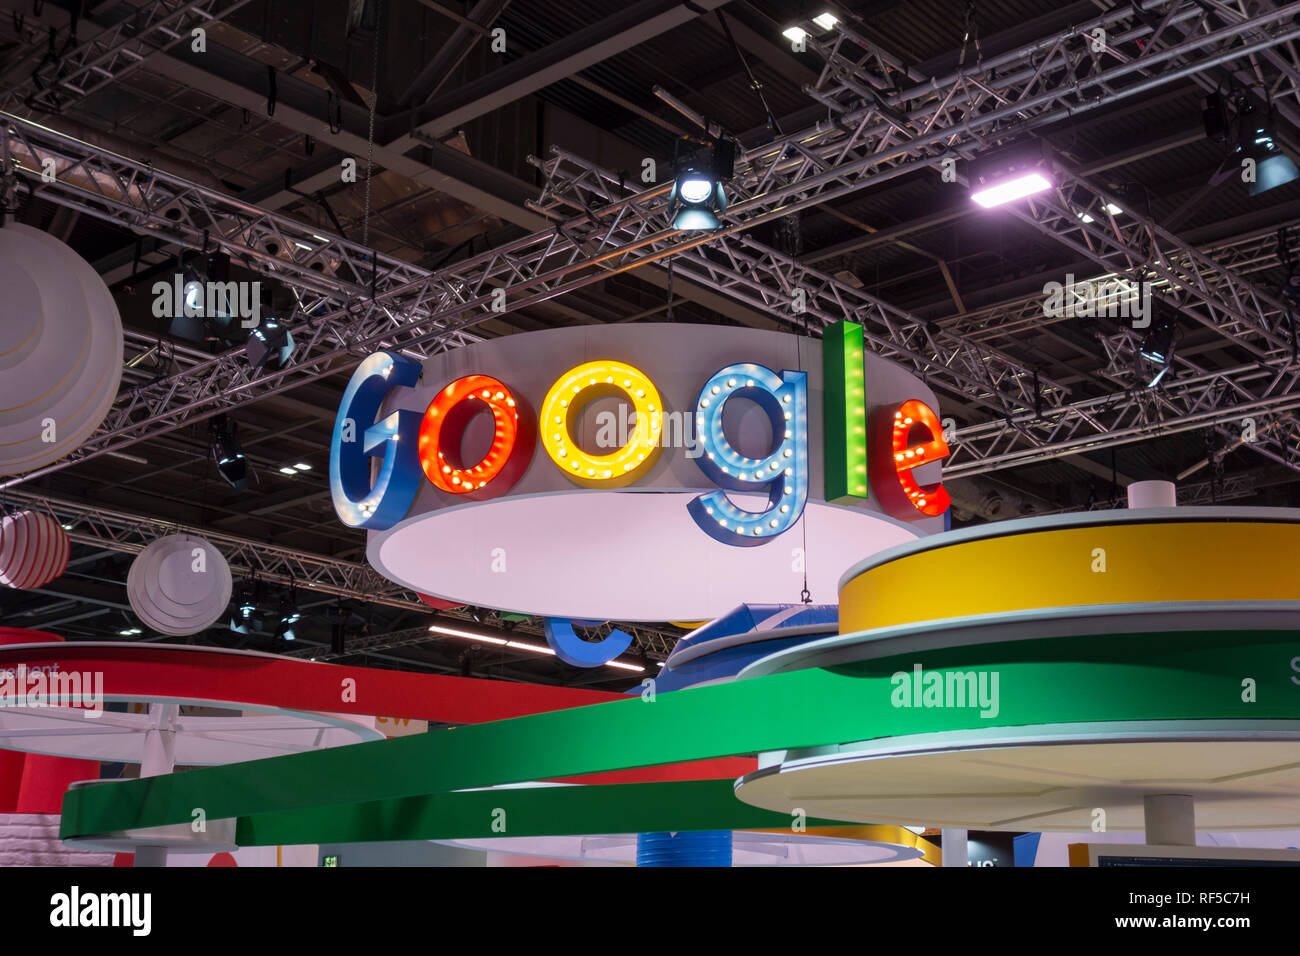 Google signage at the British Educational Technology Trade Show (BETT) at the Excel Centre, London, UK - Stock Image